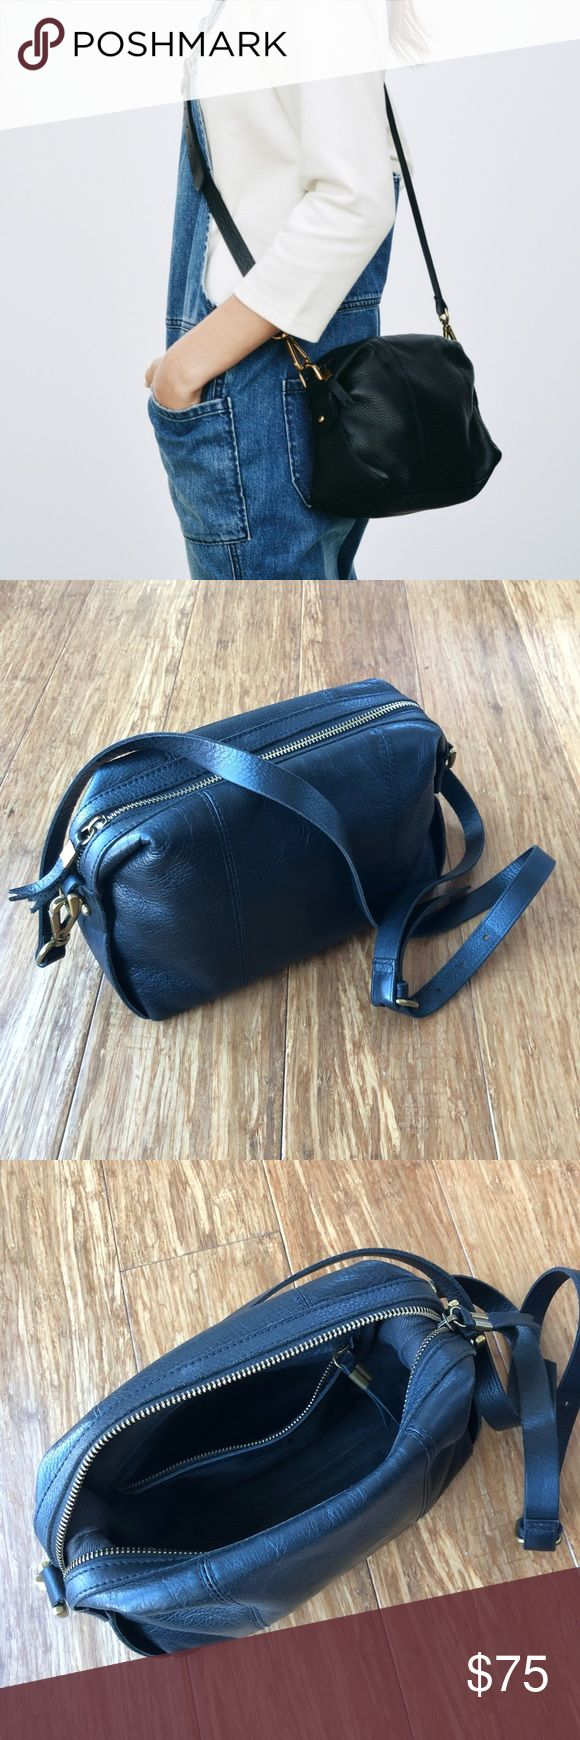 "Madewell Mini Glasgow Bag Black Madewell's go-anywhere bag in a new smaller size (that holds a surprising amount of stuff). Made of supersoft leather, this duffel-inspired design has a sturdy removable shoulder strap. Finished with Madewell's signature collar stud closures.  This item has been very gently pre-loved, please see photos. No large scratches, stains, etc. Minimal scratches and wear on corners shown in photos. * Leather * Zip closure. * Interior pocket. * 21 1/2"" shoulder strap…"